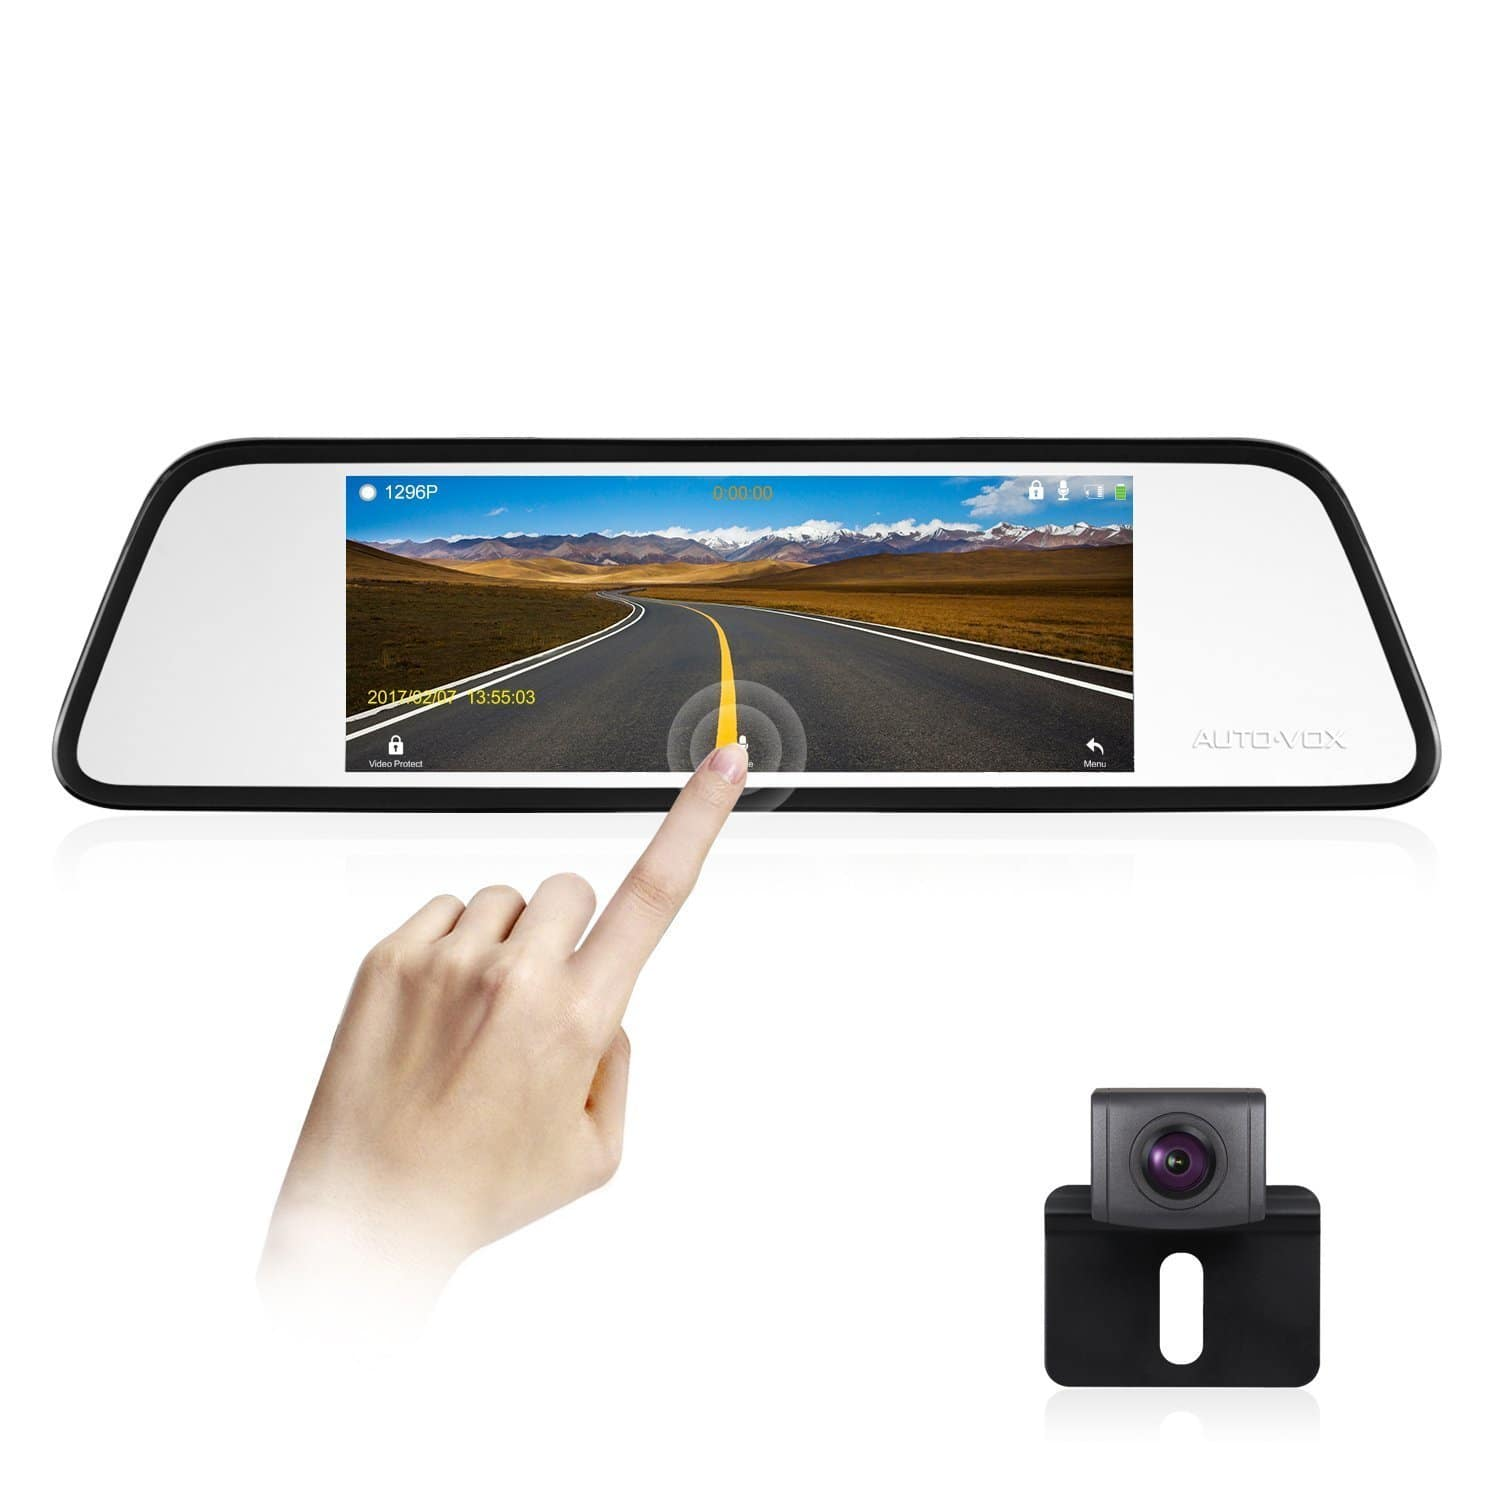 """25% OFF - AUTO-VOX M8 6.8"""" Mirror Touch Screen Dash Cam Kit with 180° Backup Camera for Parking Safety - FS @Amazon - $127.49"""